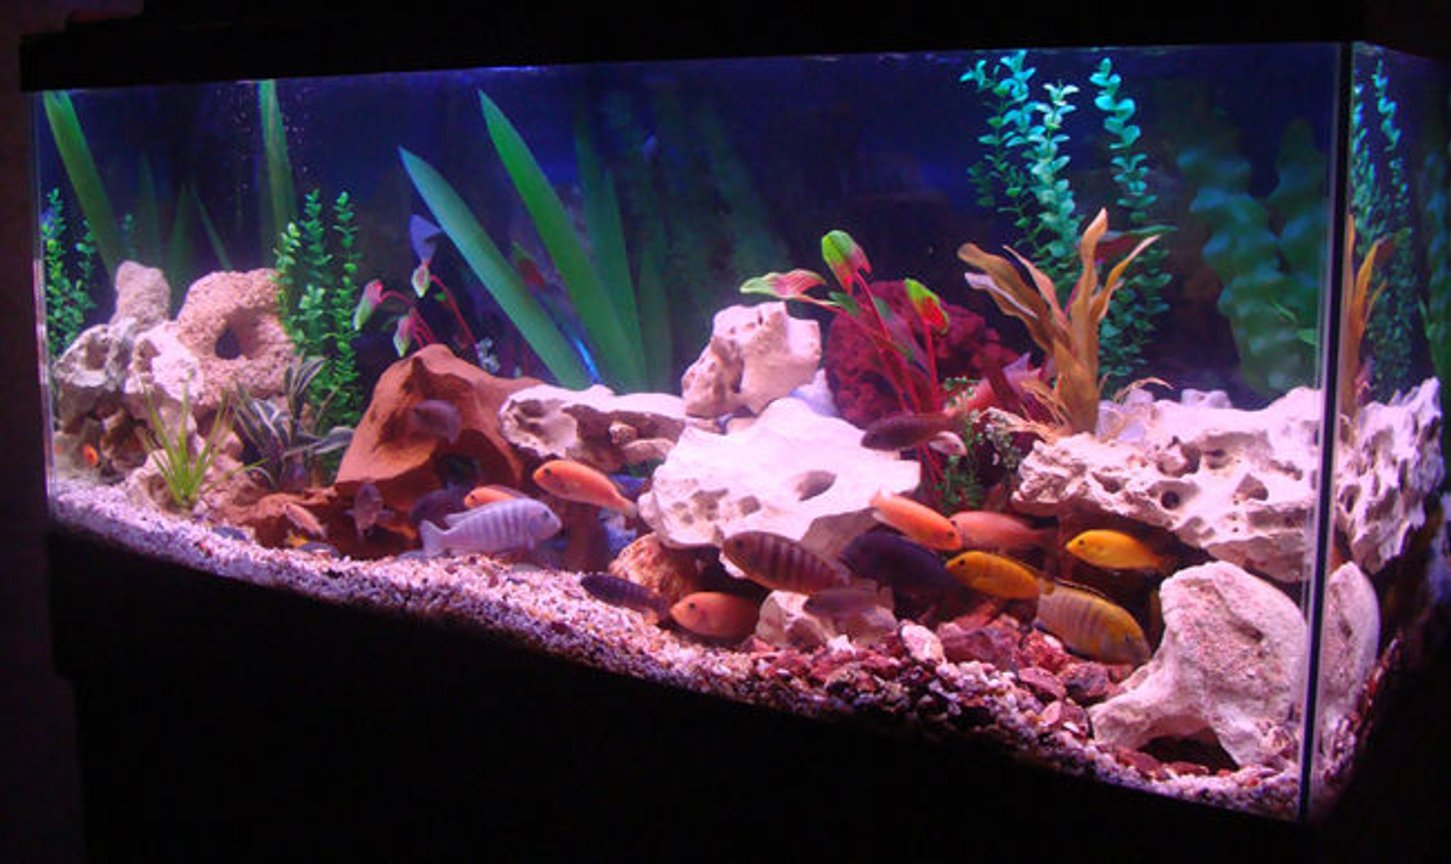 fish tank picture - 3 Weeks into the cycle and seascape...